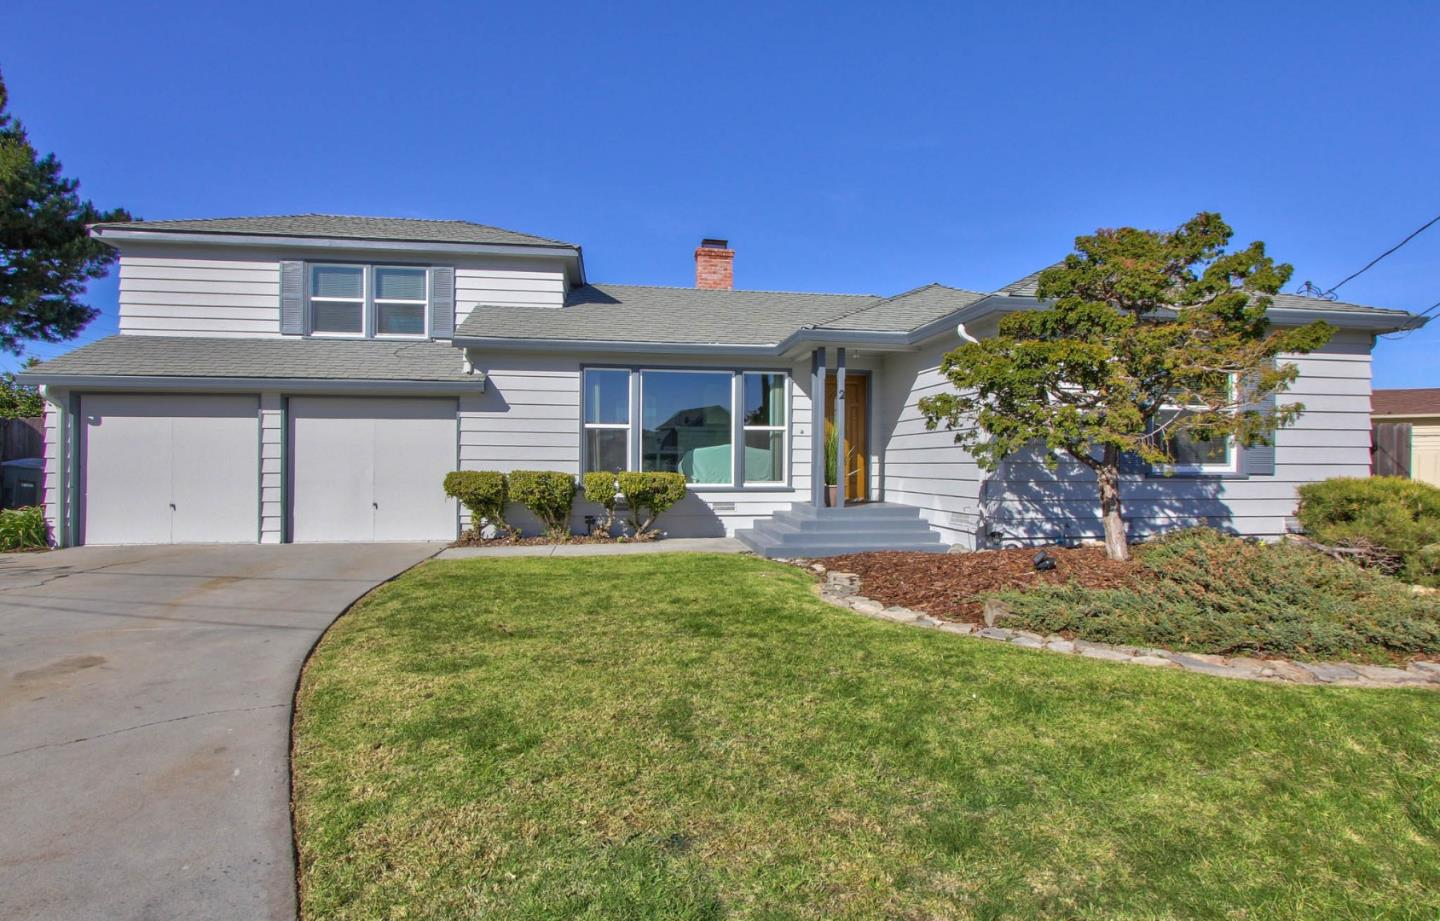 Detail Gallery Image 1 of 1 For 2 Cedros Ave, Salinas,  CA 93901 - 3 Beds | 2 Baths